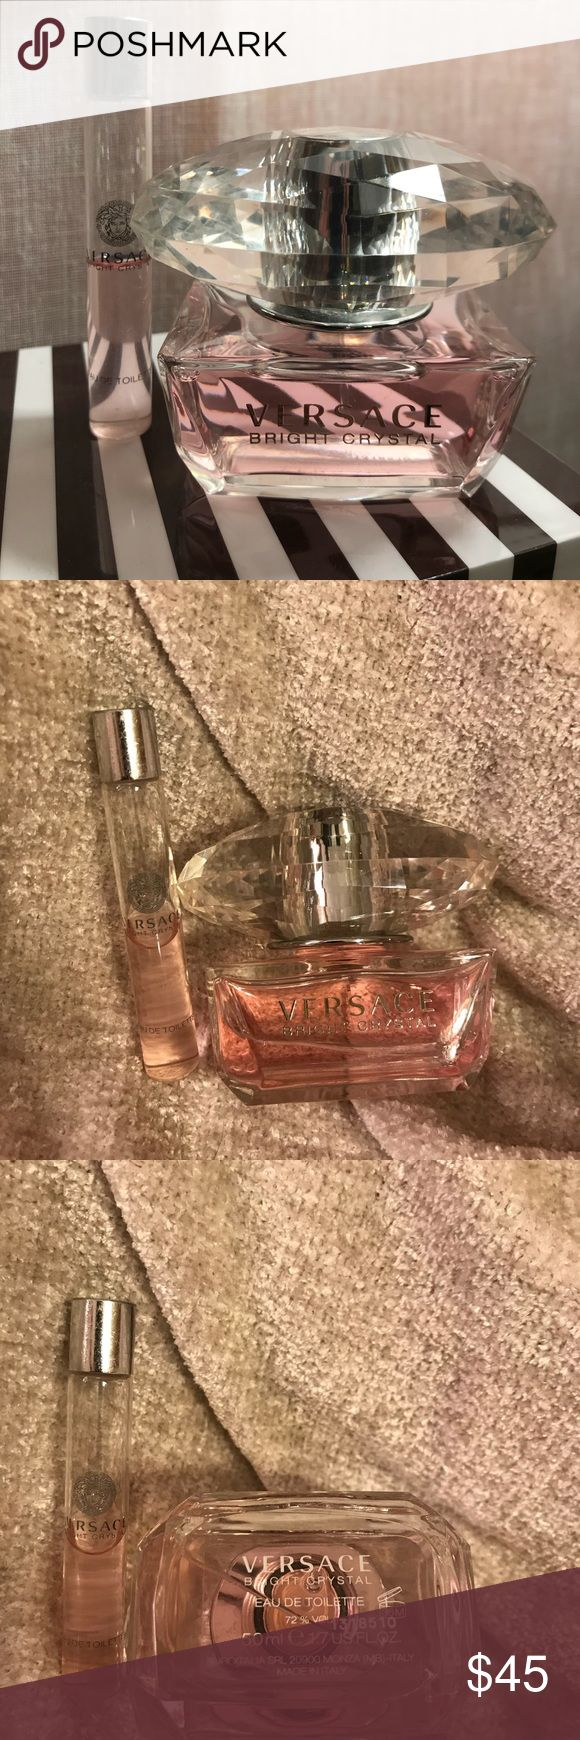 Versace Bright Crystal pink perfume 50ml Versace Bright Crystal (pink) perfume.  Large 50ml bottle and 10 ml roller ball travel size are Eau De Toilette.  If I used this perfume I may have sprayed it twice.  The roller ball perfume is half full 🌓. Versace Other